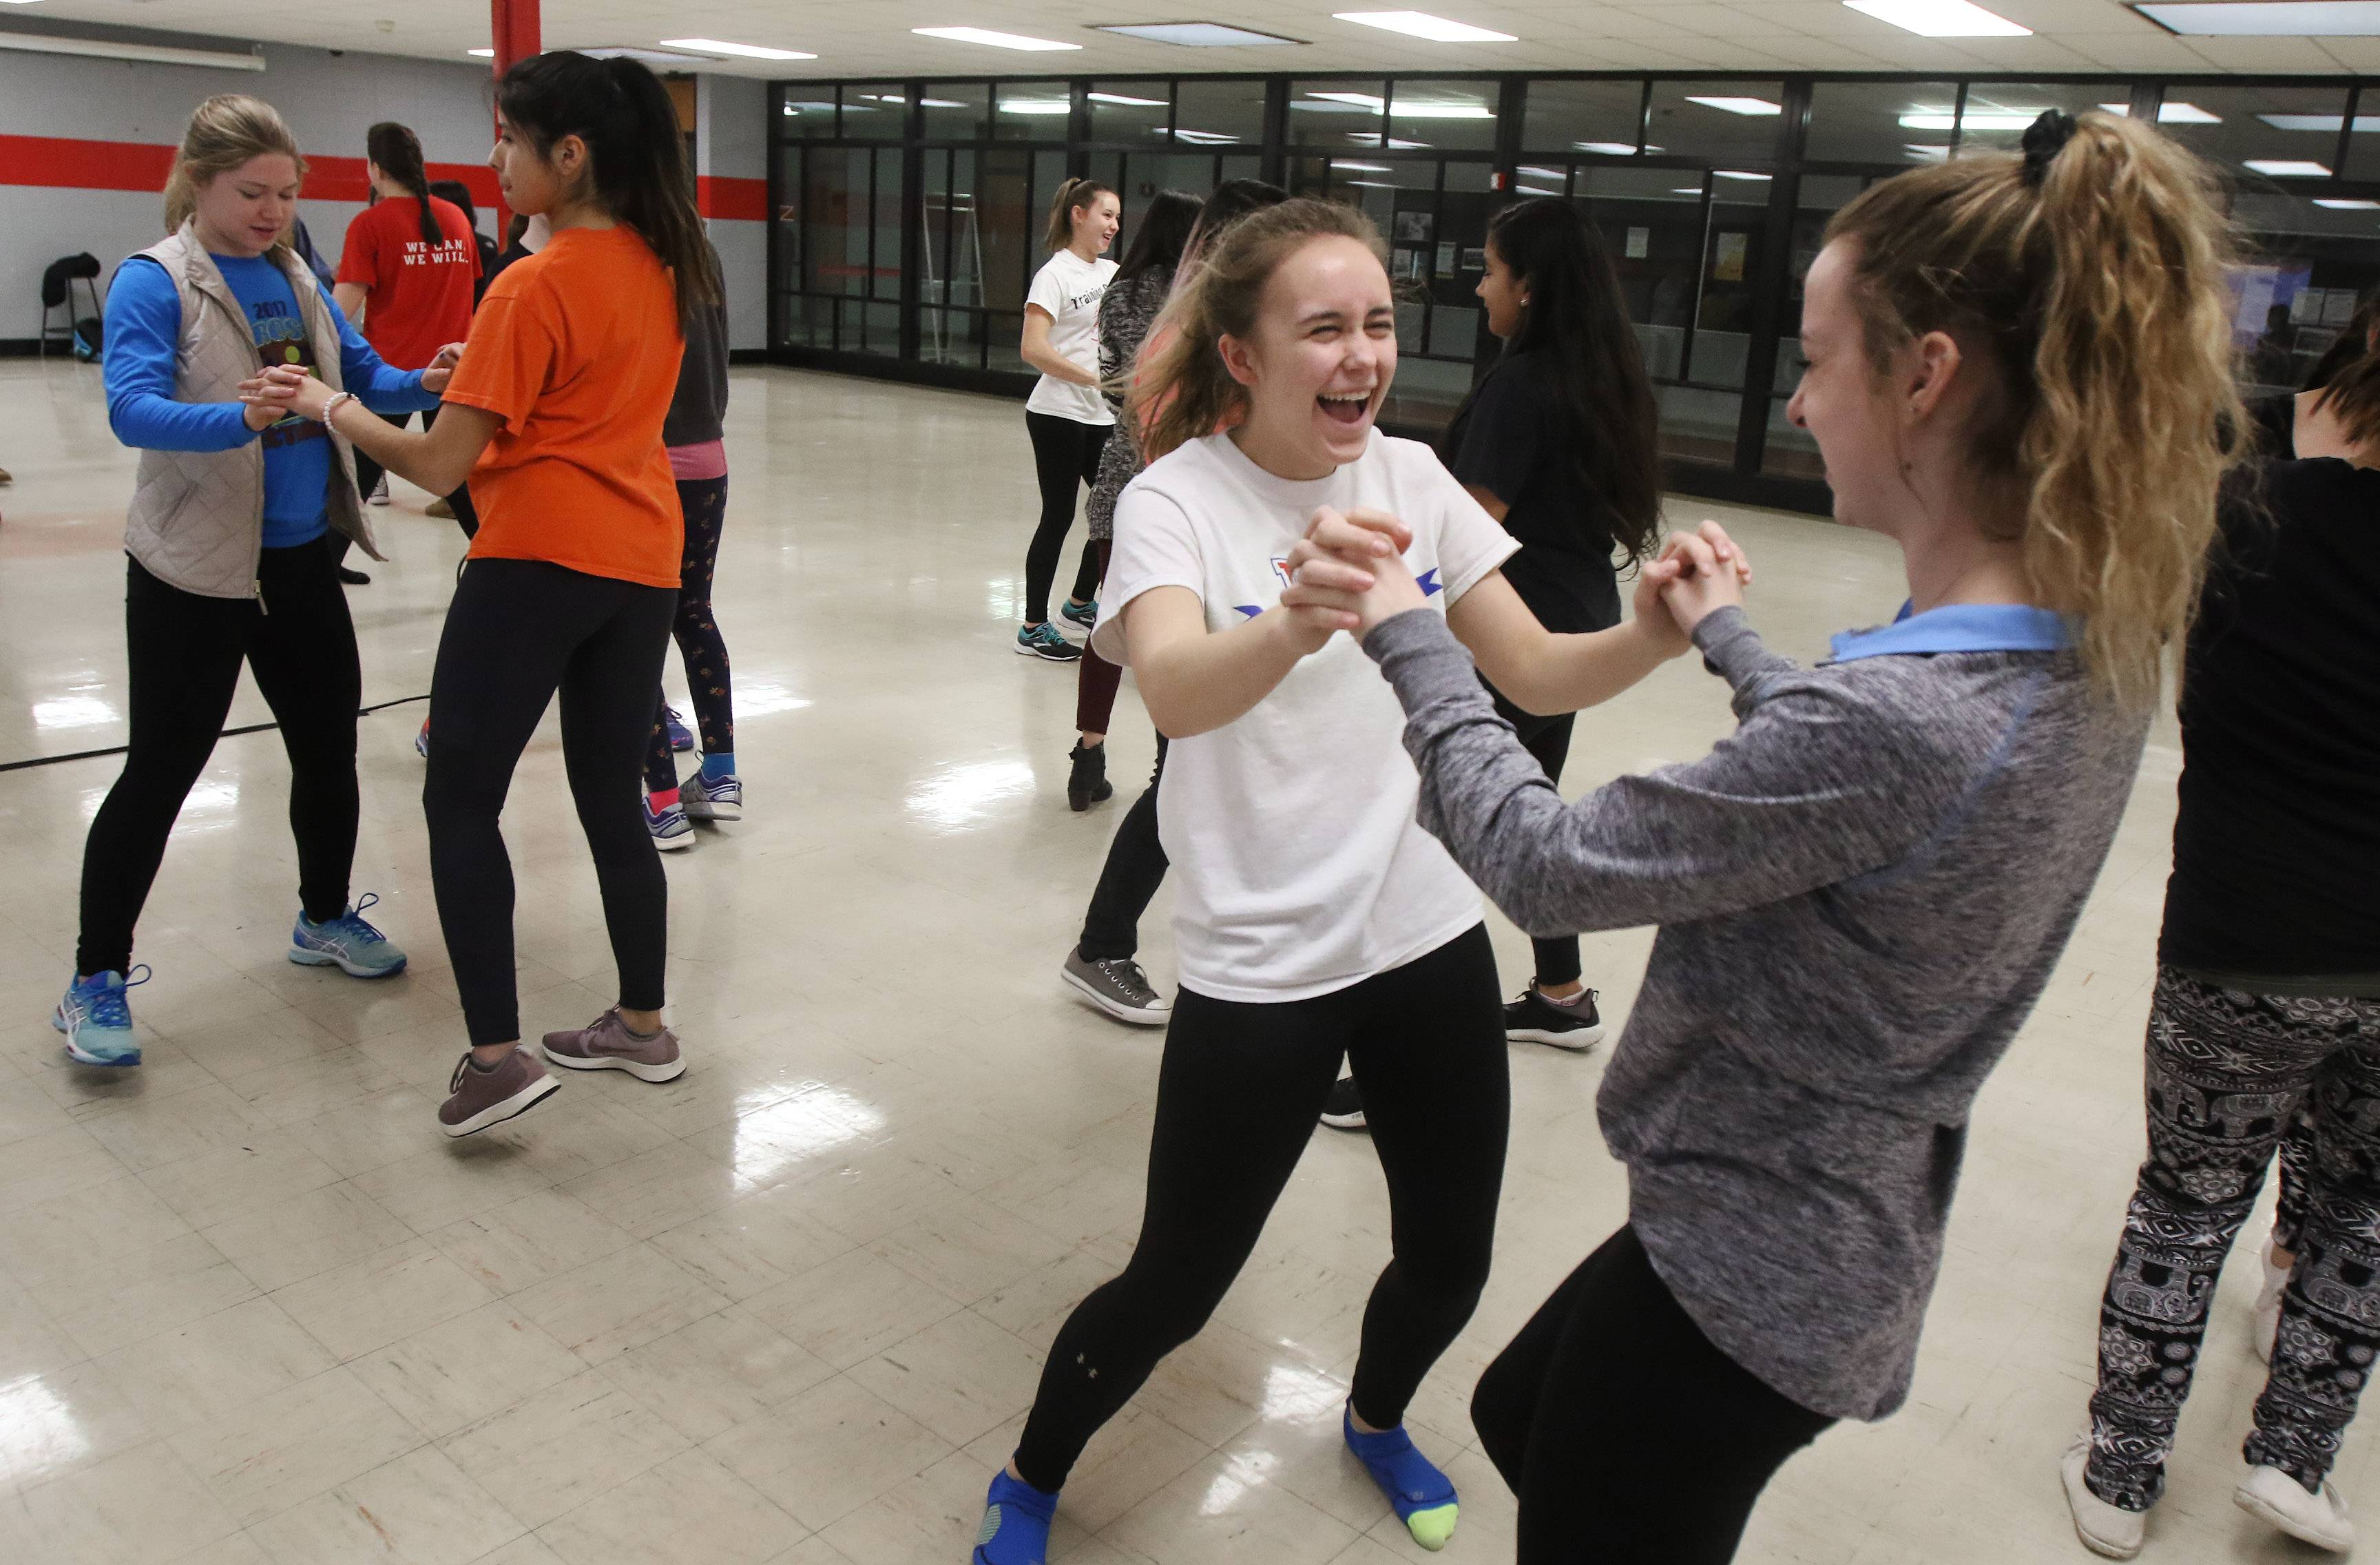 Junior Katie Miller, left, dances with junior Clarissa Wienckowski during the Latin dance workshop Tuesday at Mundelein High School. Members of the Puertas Latin Culture Club and the Student Leadership Organization provided lessons in preparation for the first Latin school dance on March 17.